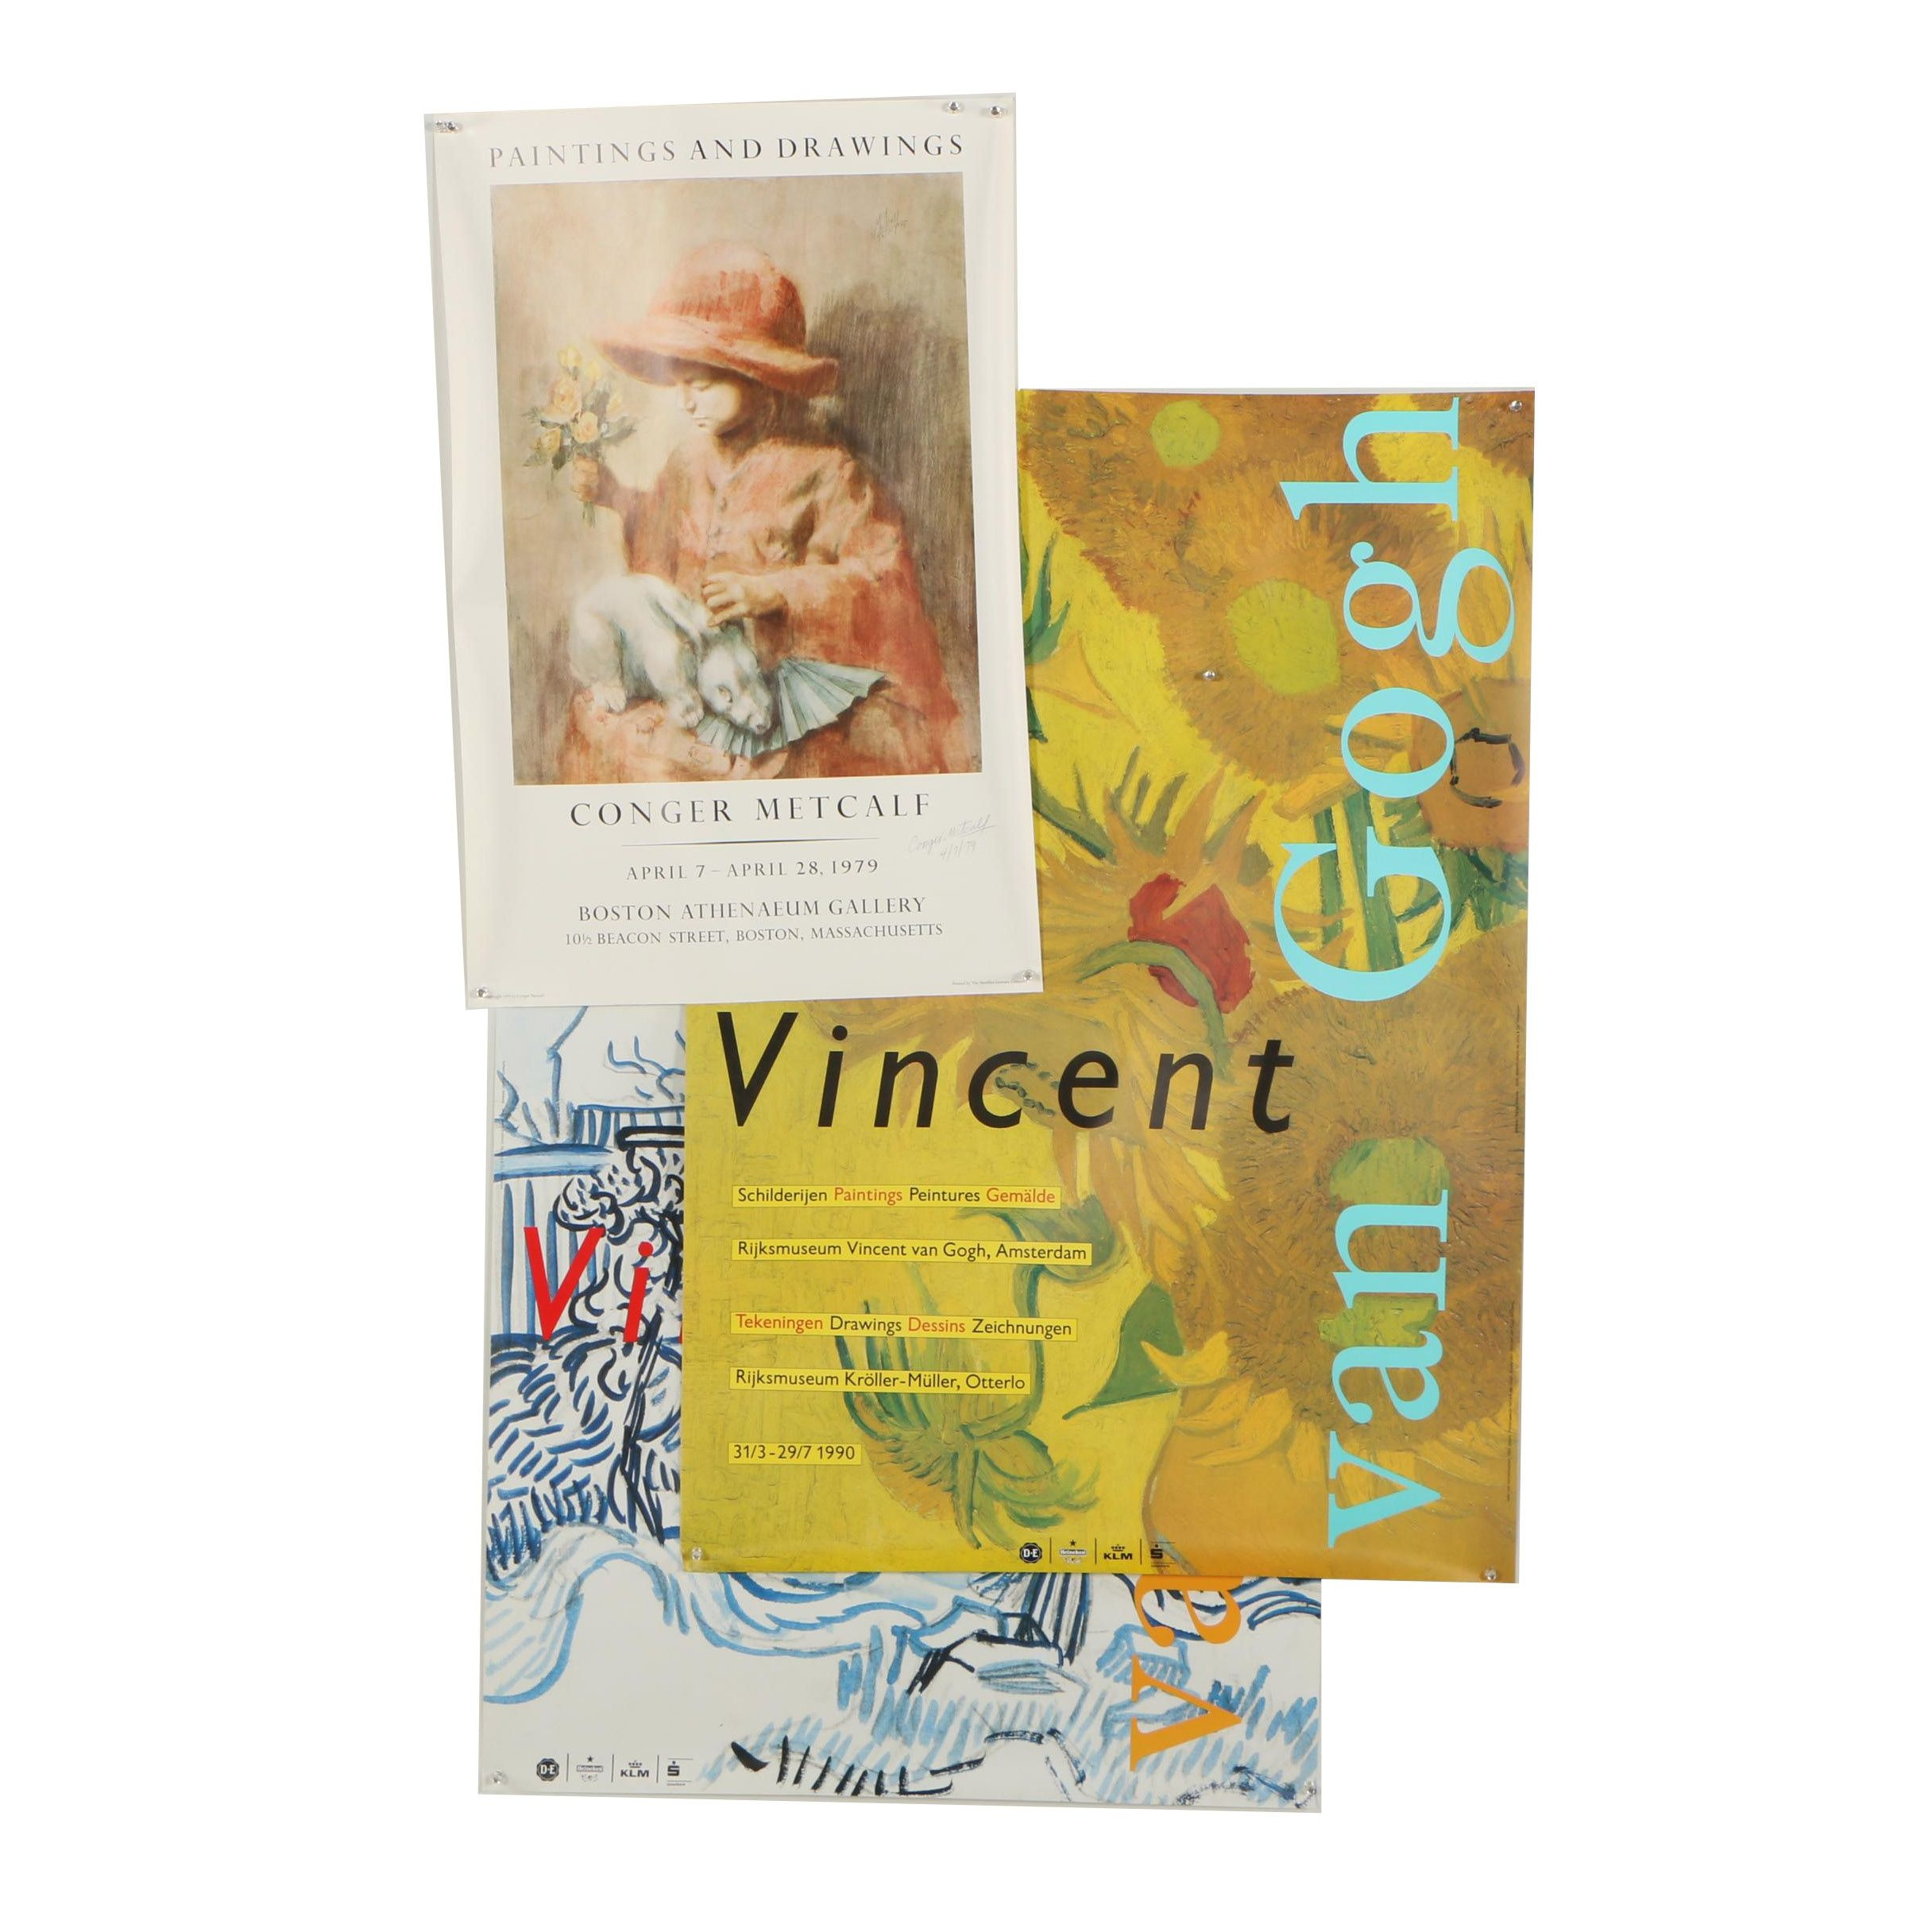 Exhibition Posters for Vincent Van Gogh and Conger Metcalf